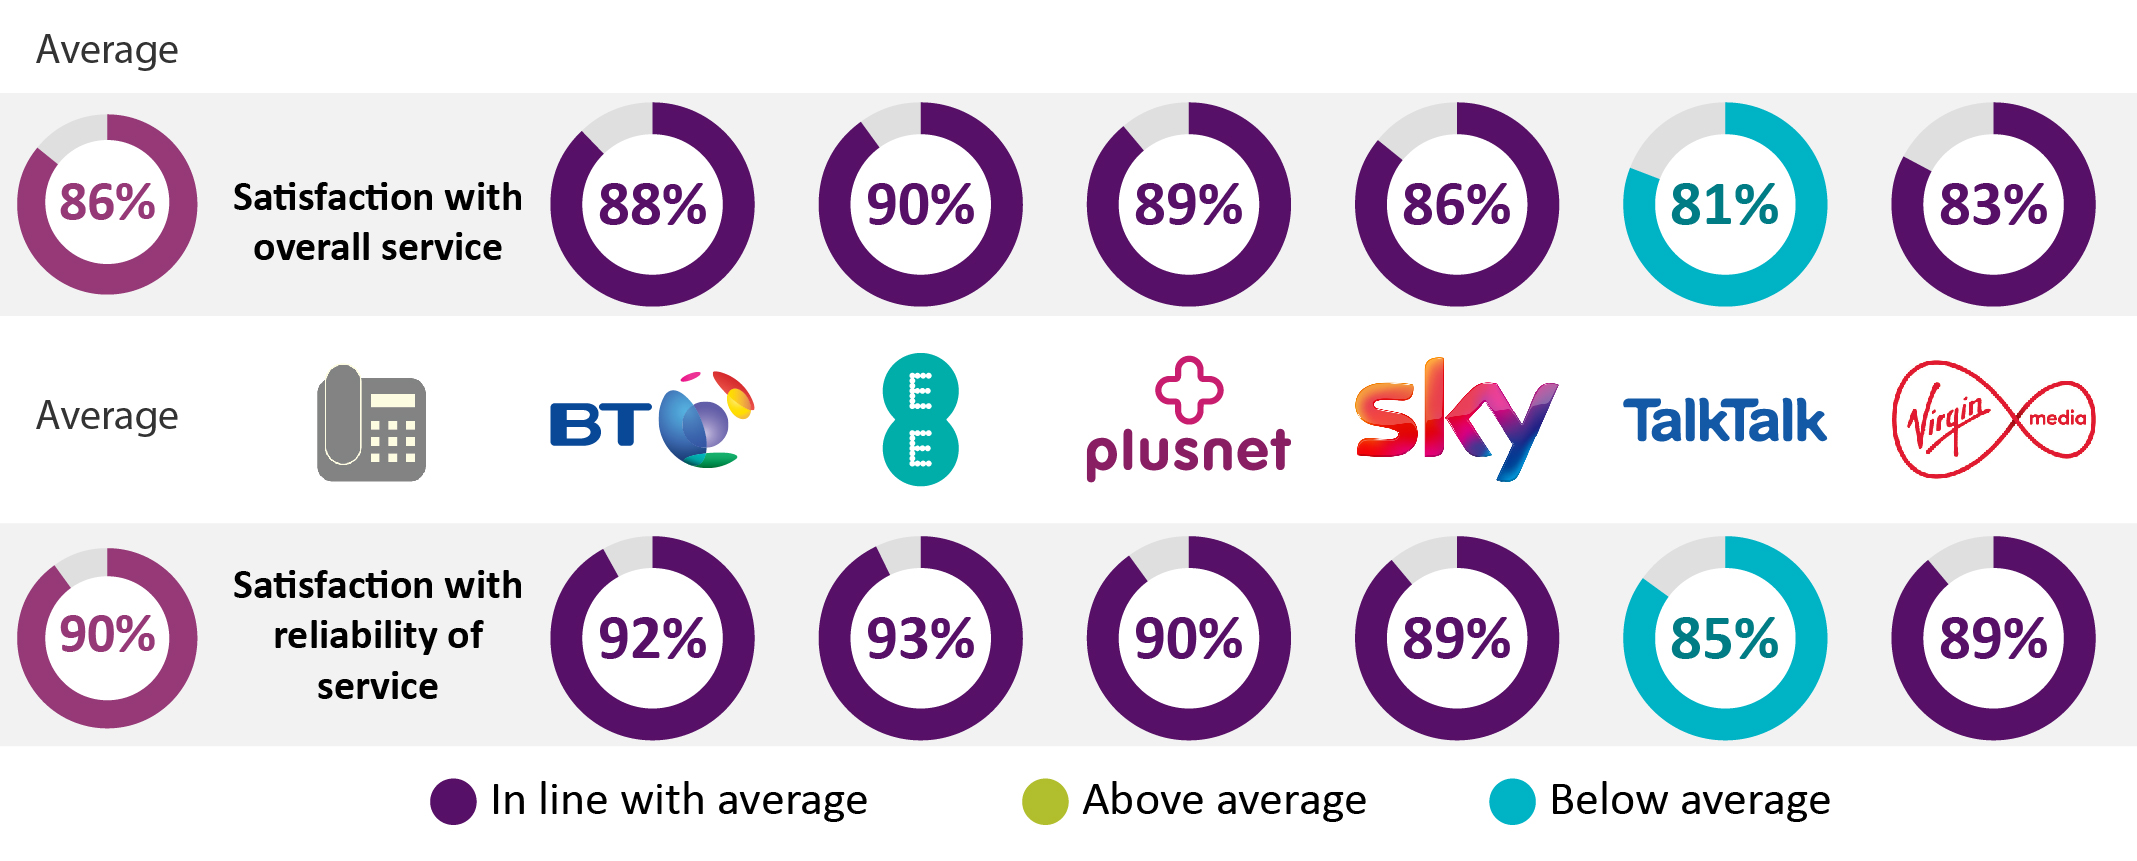 Average satisfaction with overall service is 86%. BT = 88%. EE = 90%. Plusnet = 89%. Sky = 86%. TalkTalk = 81%. Virgin Mobile = 83%. Average satisfaction with reliability of service is 90%. BT = 92%. EE = 93%. Plusnet = 90%. Sky = 89%. TalkTalk = 85%. Virgin Mobile = 89%